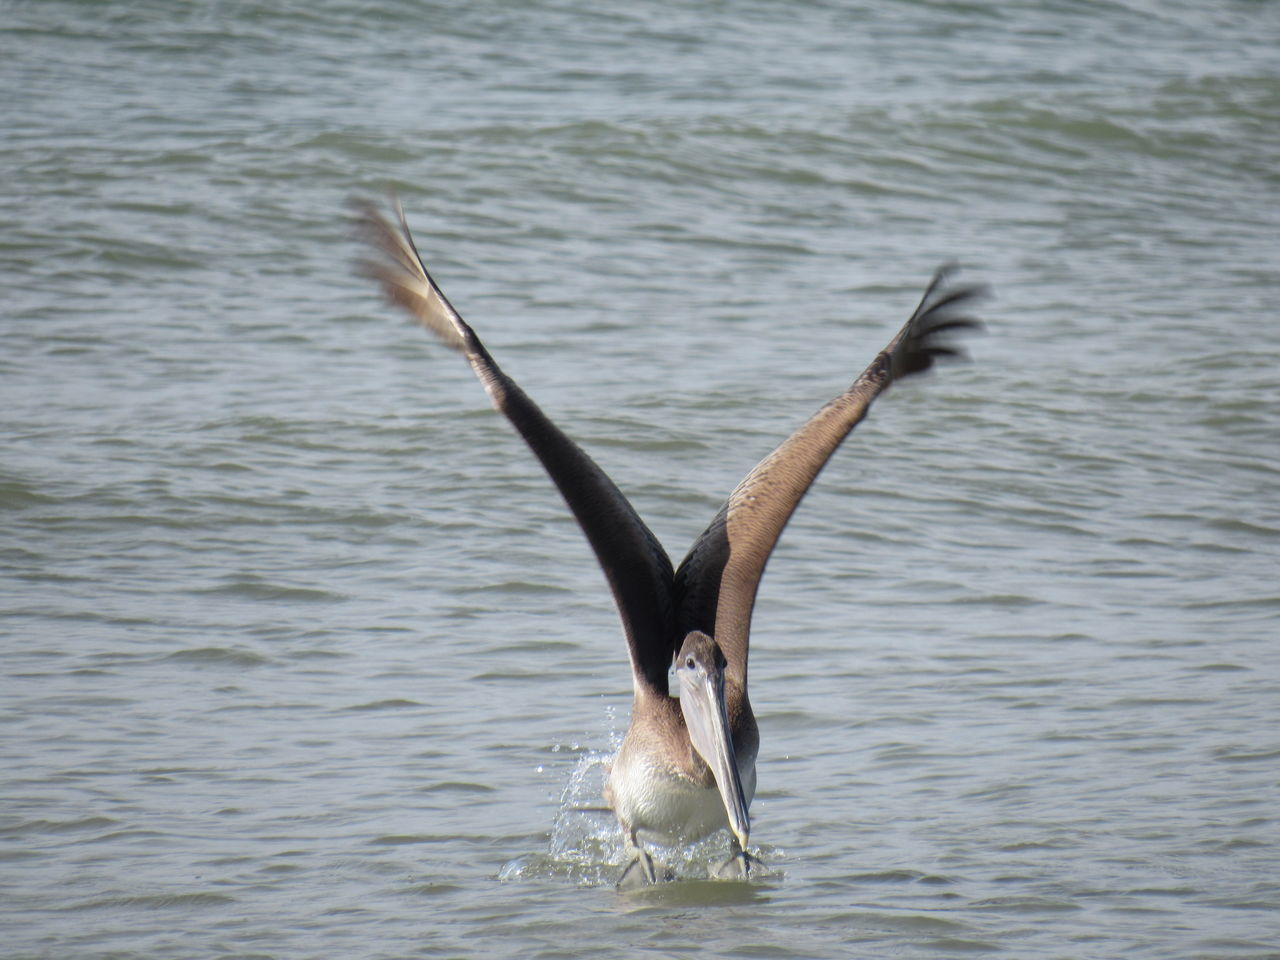 Landing Bird Brown Pelican Flying High Long Beak Ocean View Ocean Water Spread Your Wings Suttle Waves Water Landing